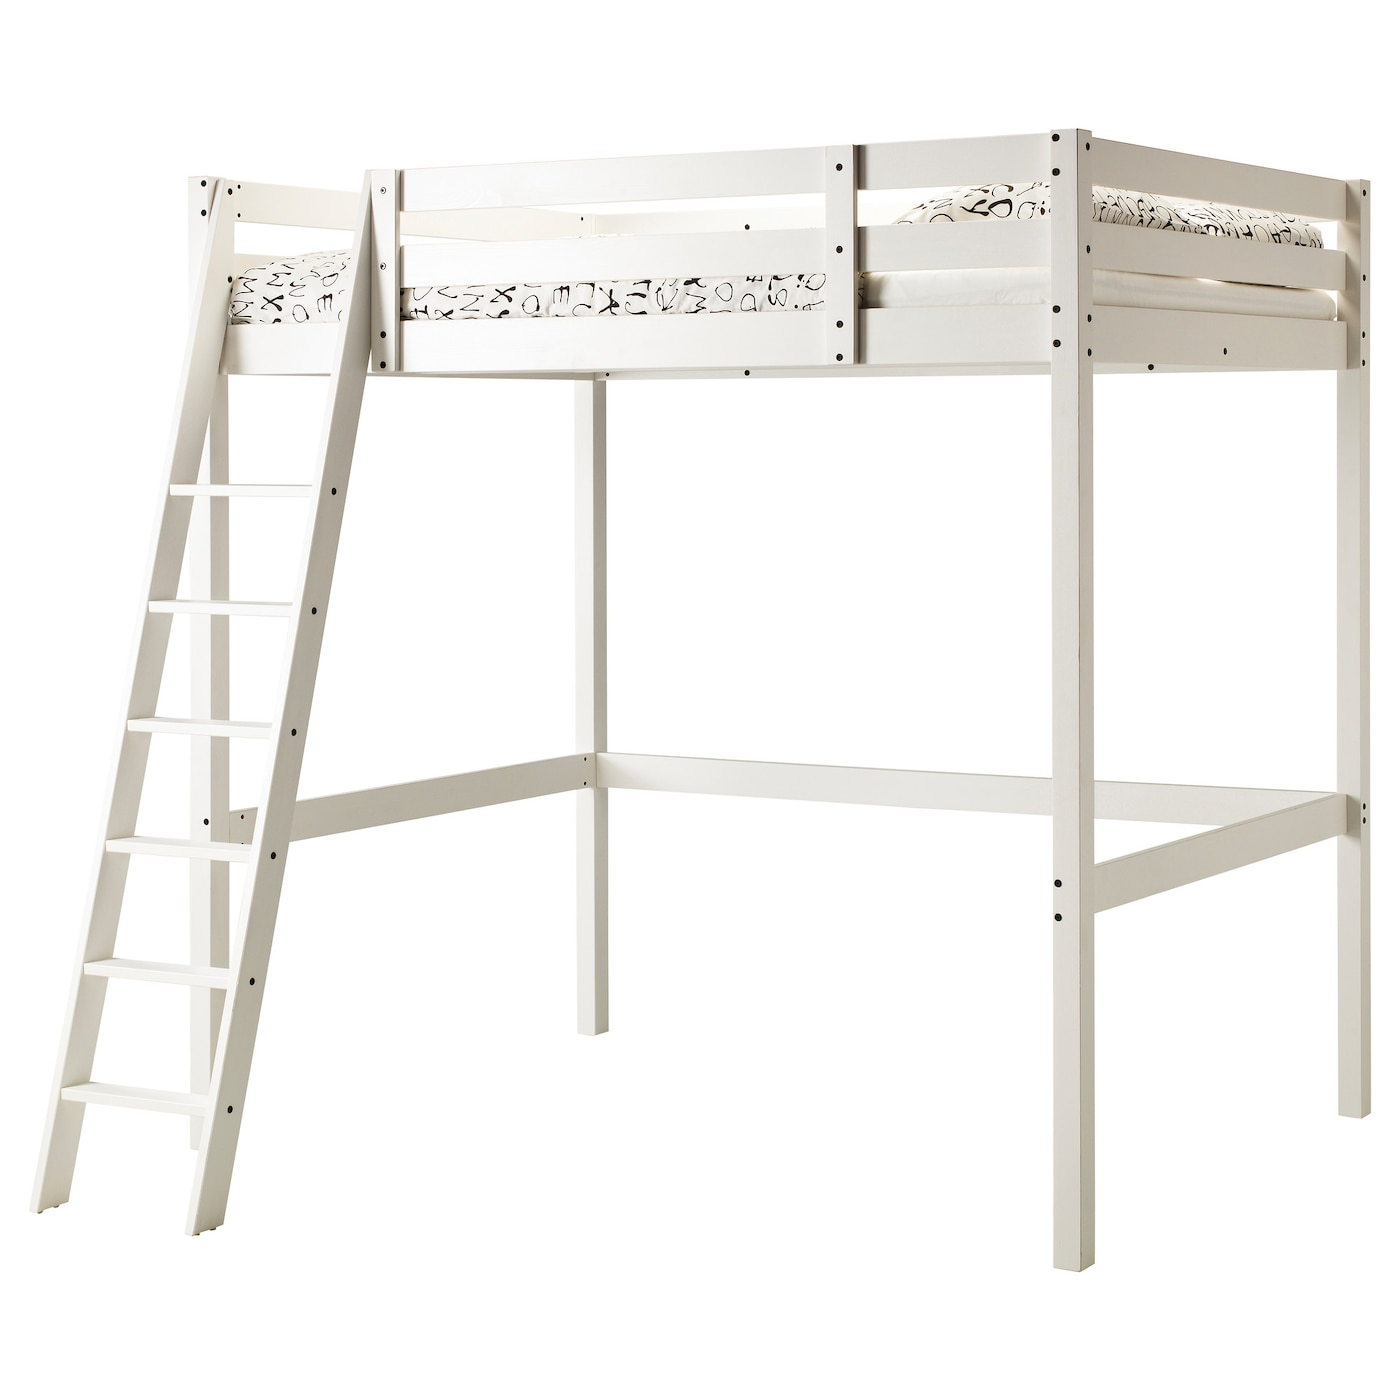 stor loft bed frame white stain 140x200 cm ikea. Black Bedroom Furniture Sets. Home Design Ideas